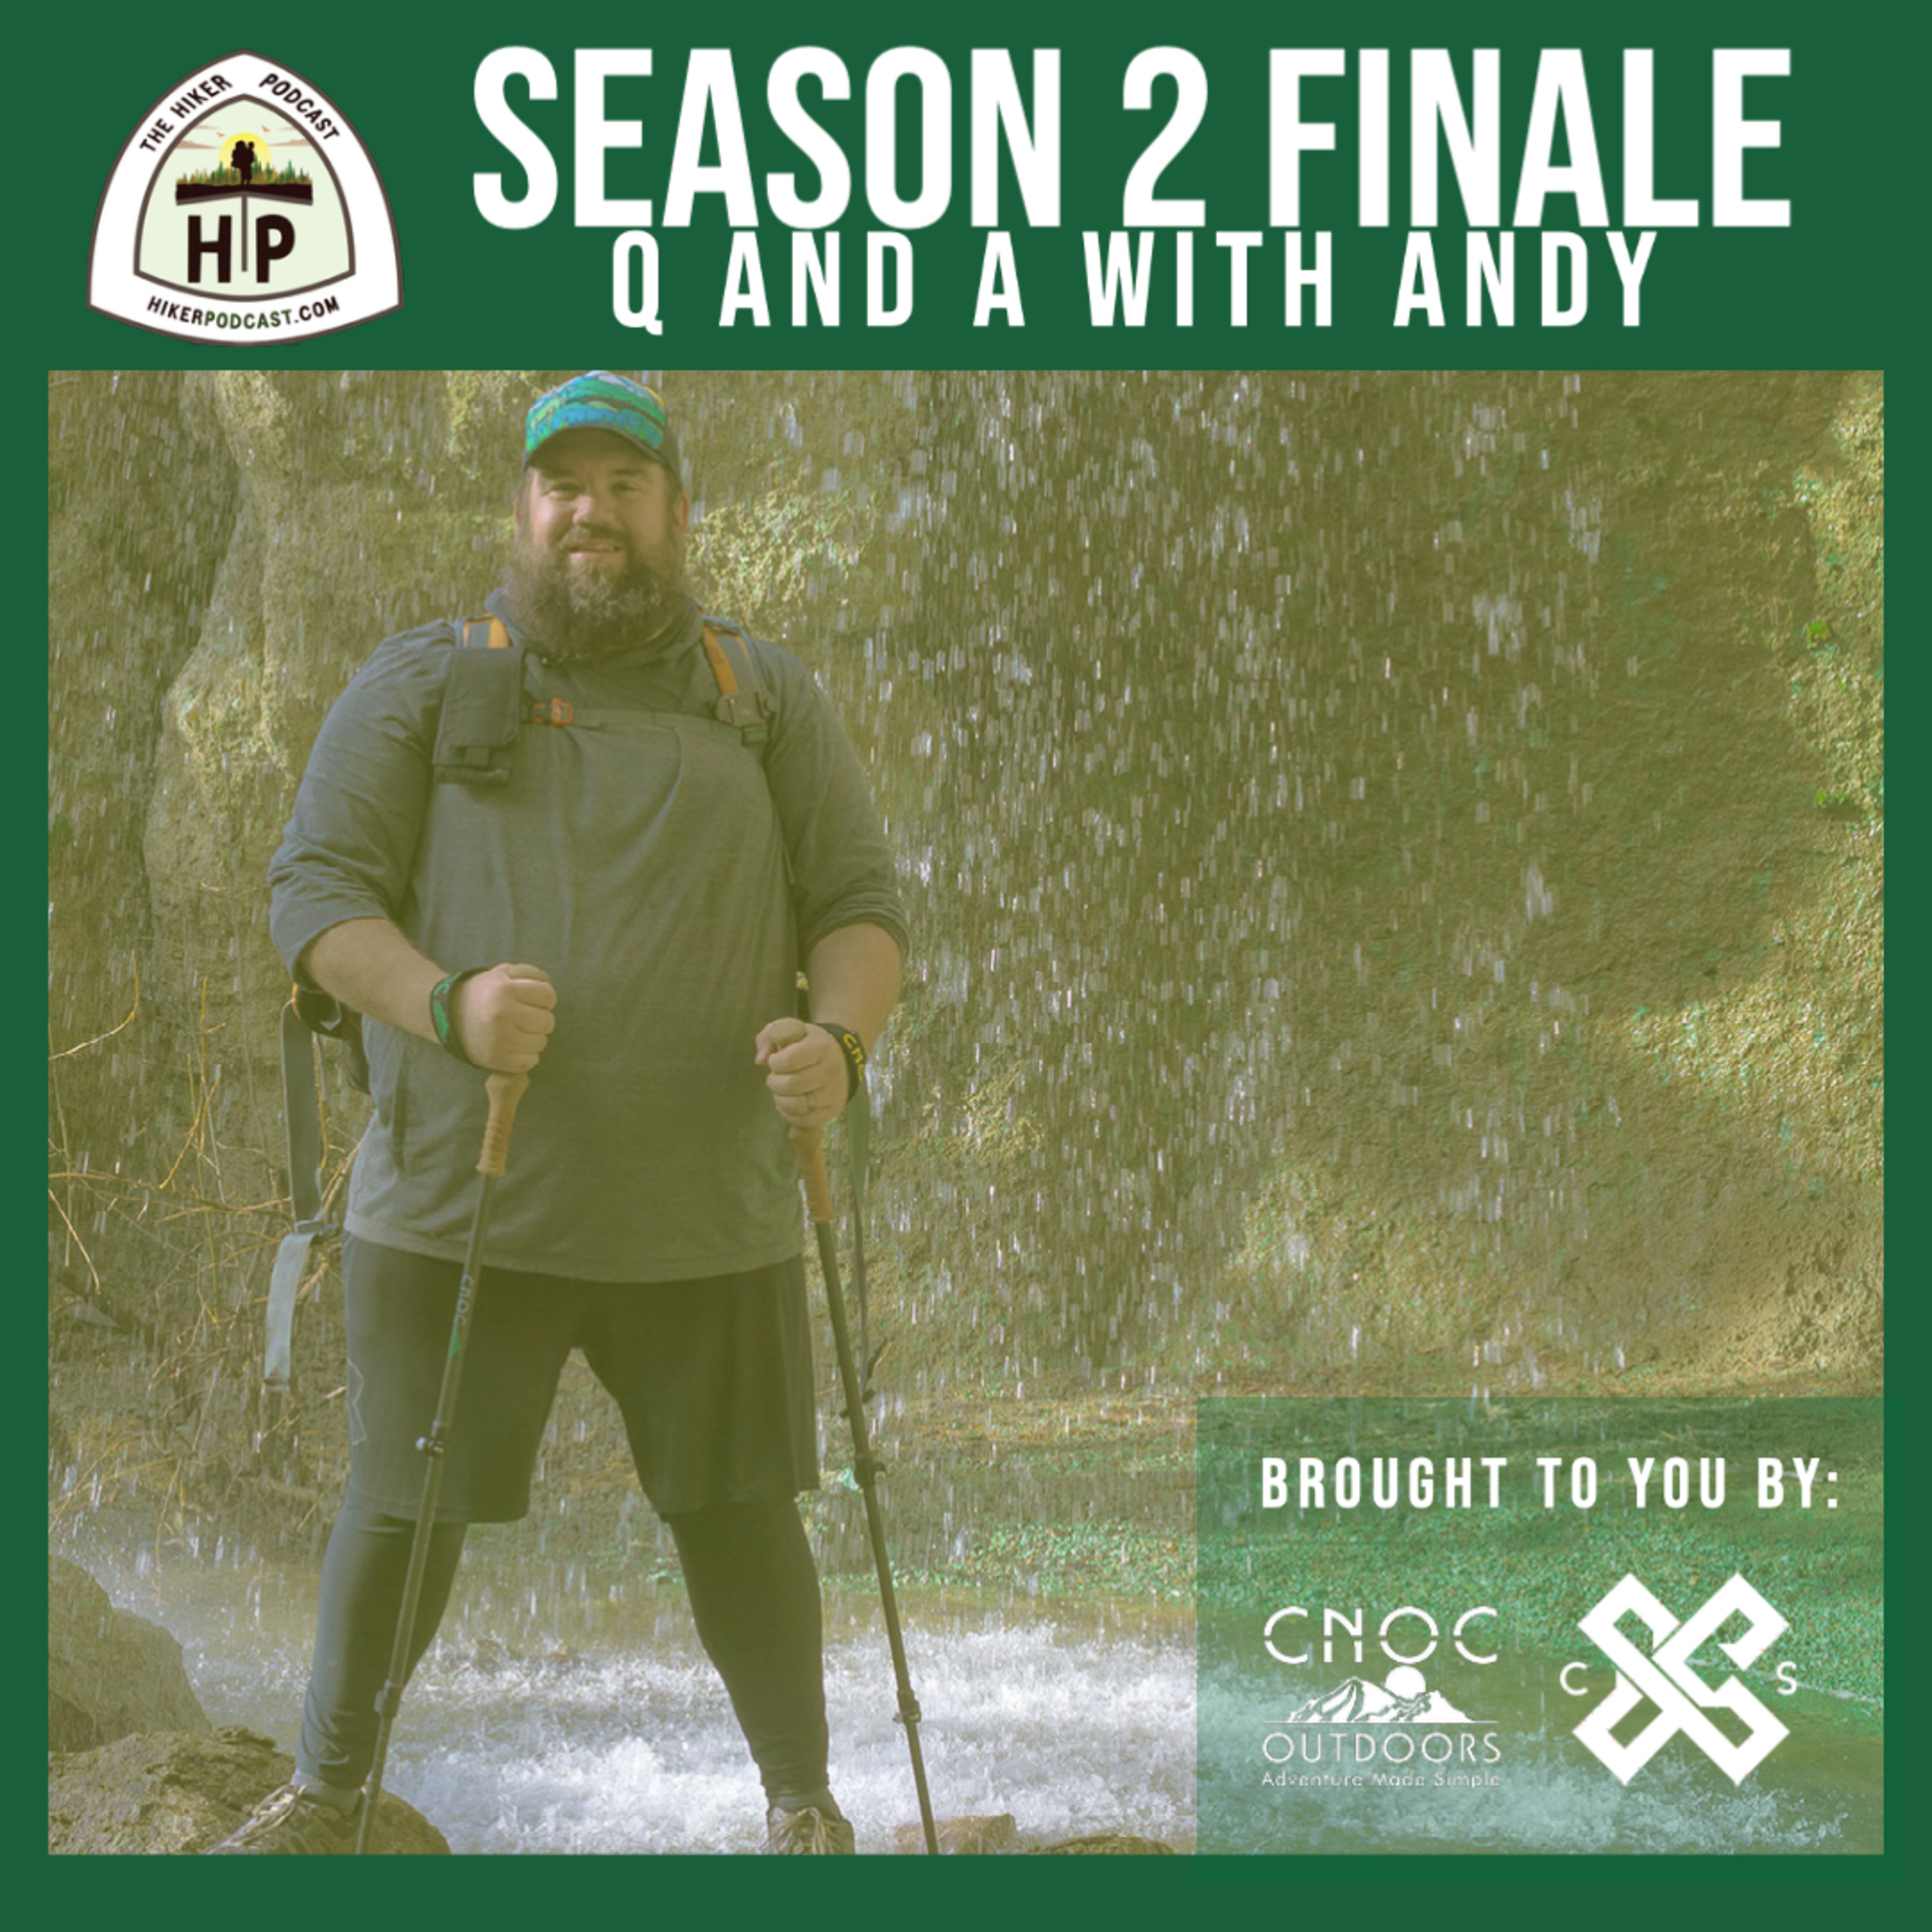 Season 2 Finale of The Hiker Podcast